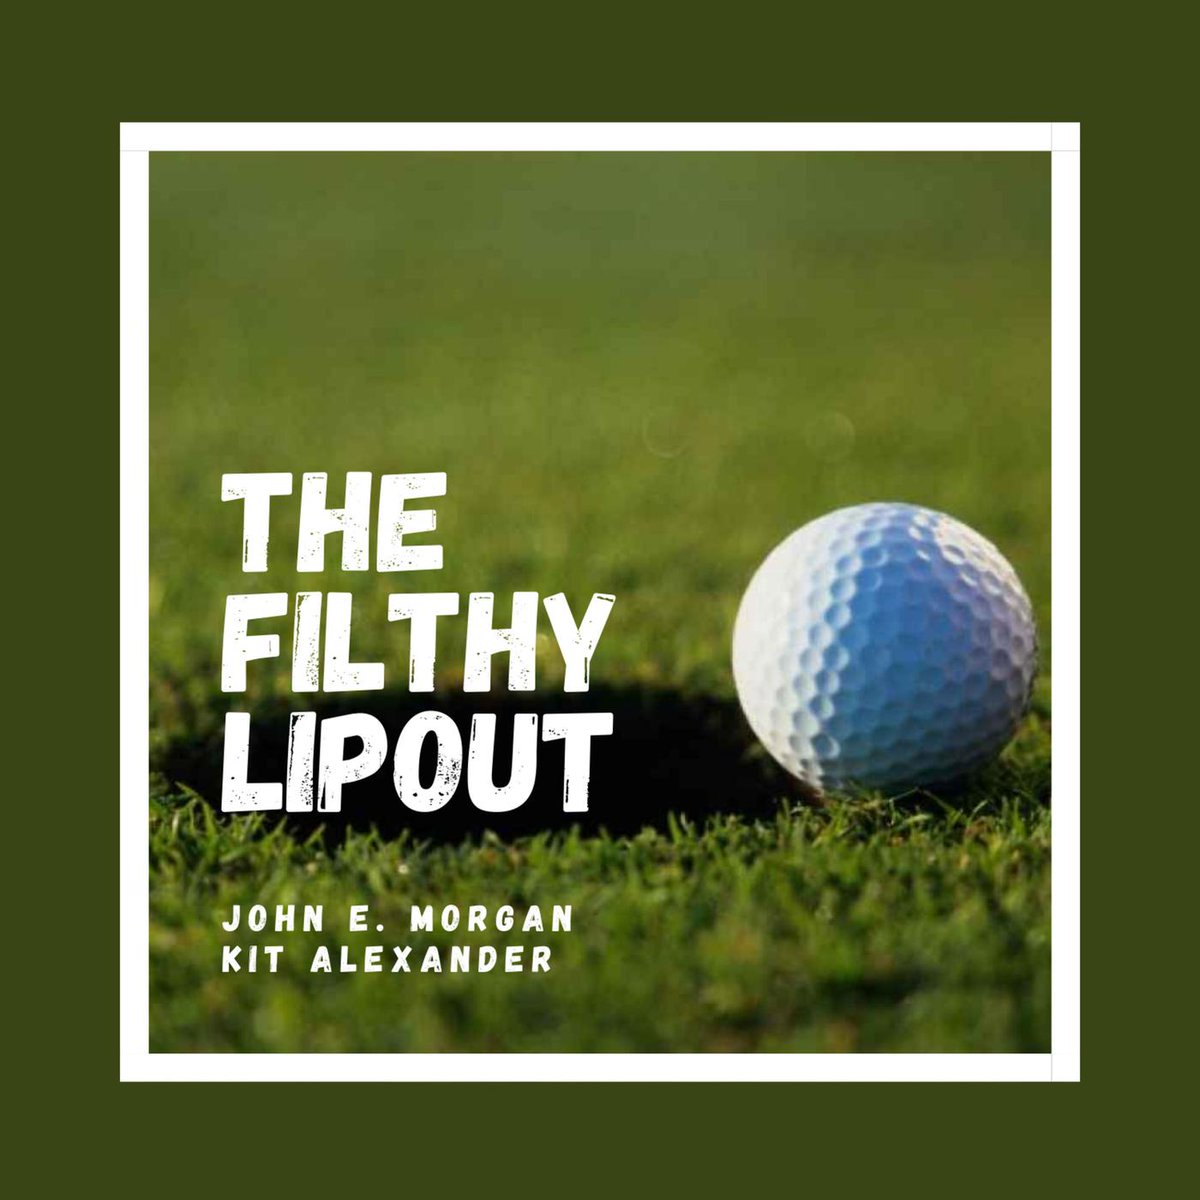 📢  We're delighted to be sponsoring the excellent @FilthyLipout Podcast 📢  🎧  This week, the guys chat all things golf with superstar @NiallOfficial as he explains his passion for the game, growing @modestgolf and what it's like to play Augusta.